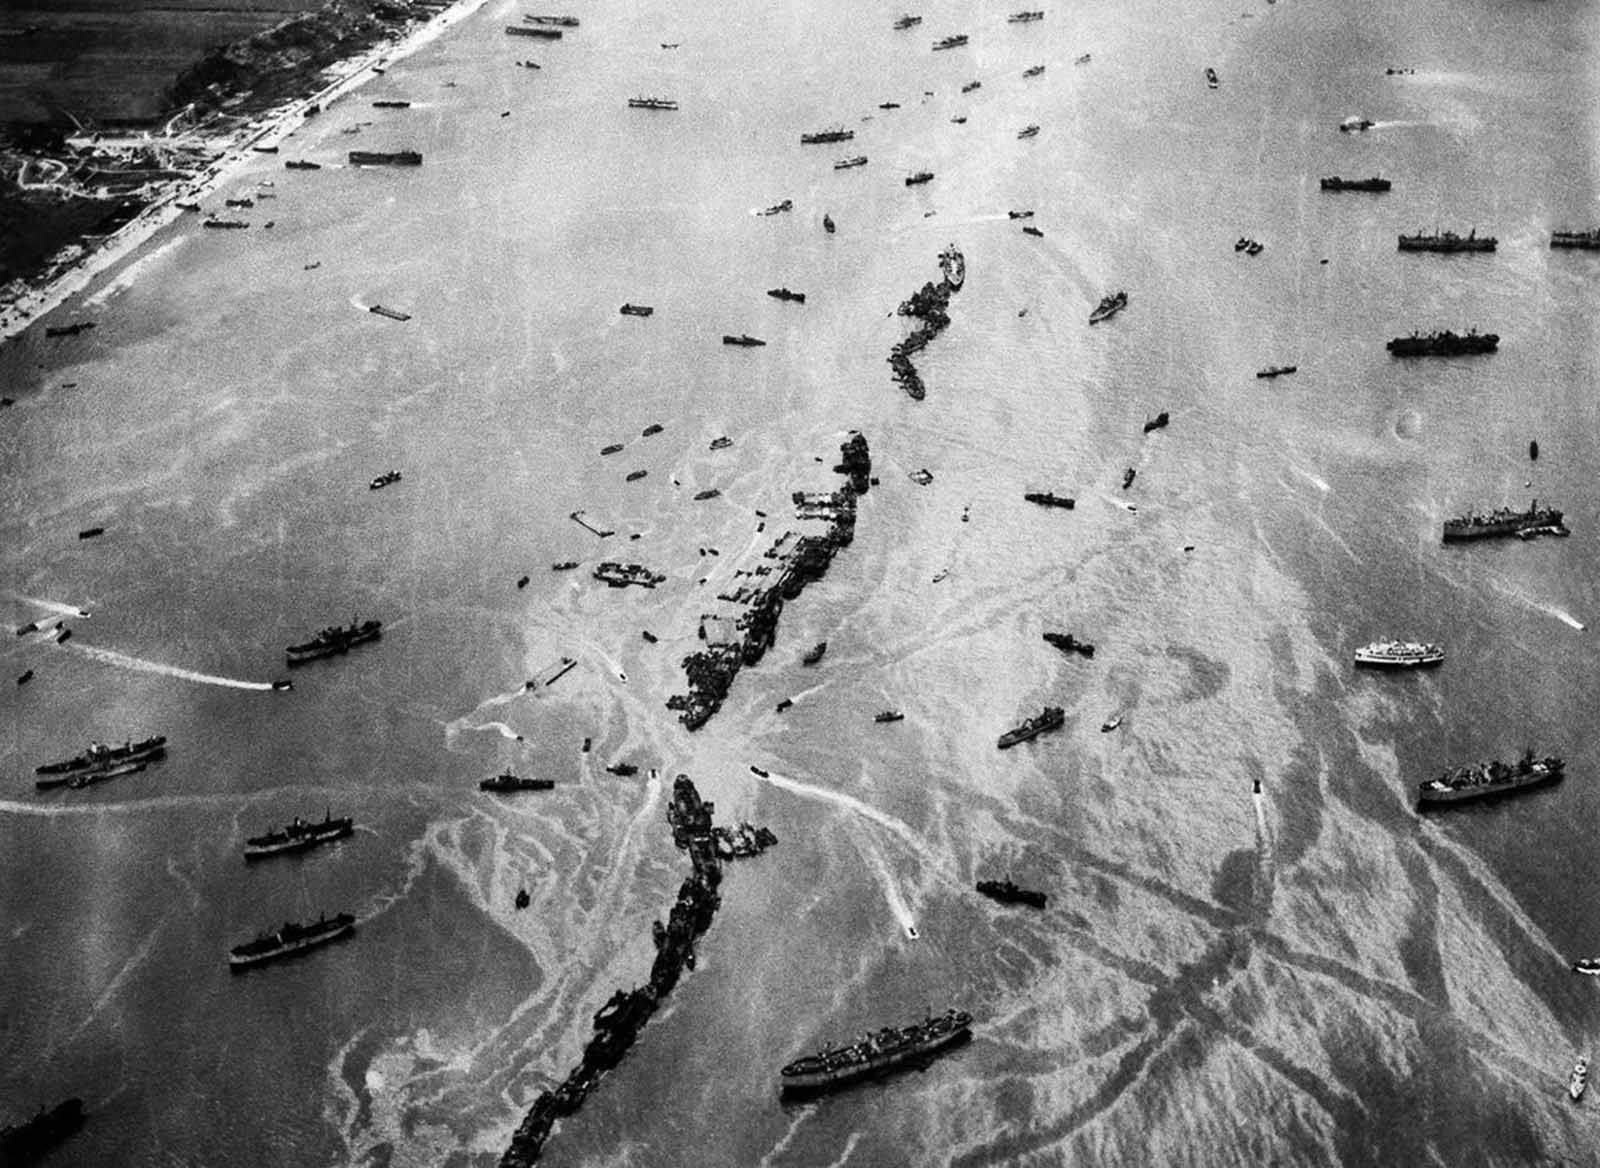 Thirteen liberty ships, deliberately scuttled to form a breakwater for invasion vessels landing on the Normandy beachhead lie in line off the beach, shielding the ships in shore. The artificial harbor installation was prefabricated and towed across the Channel in 1944.